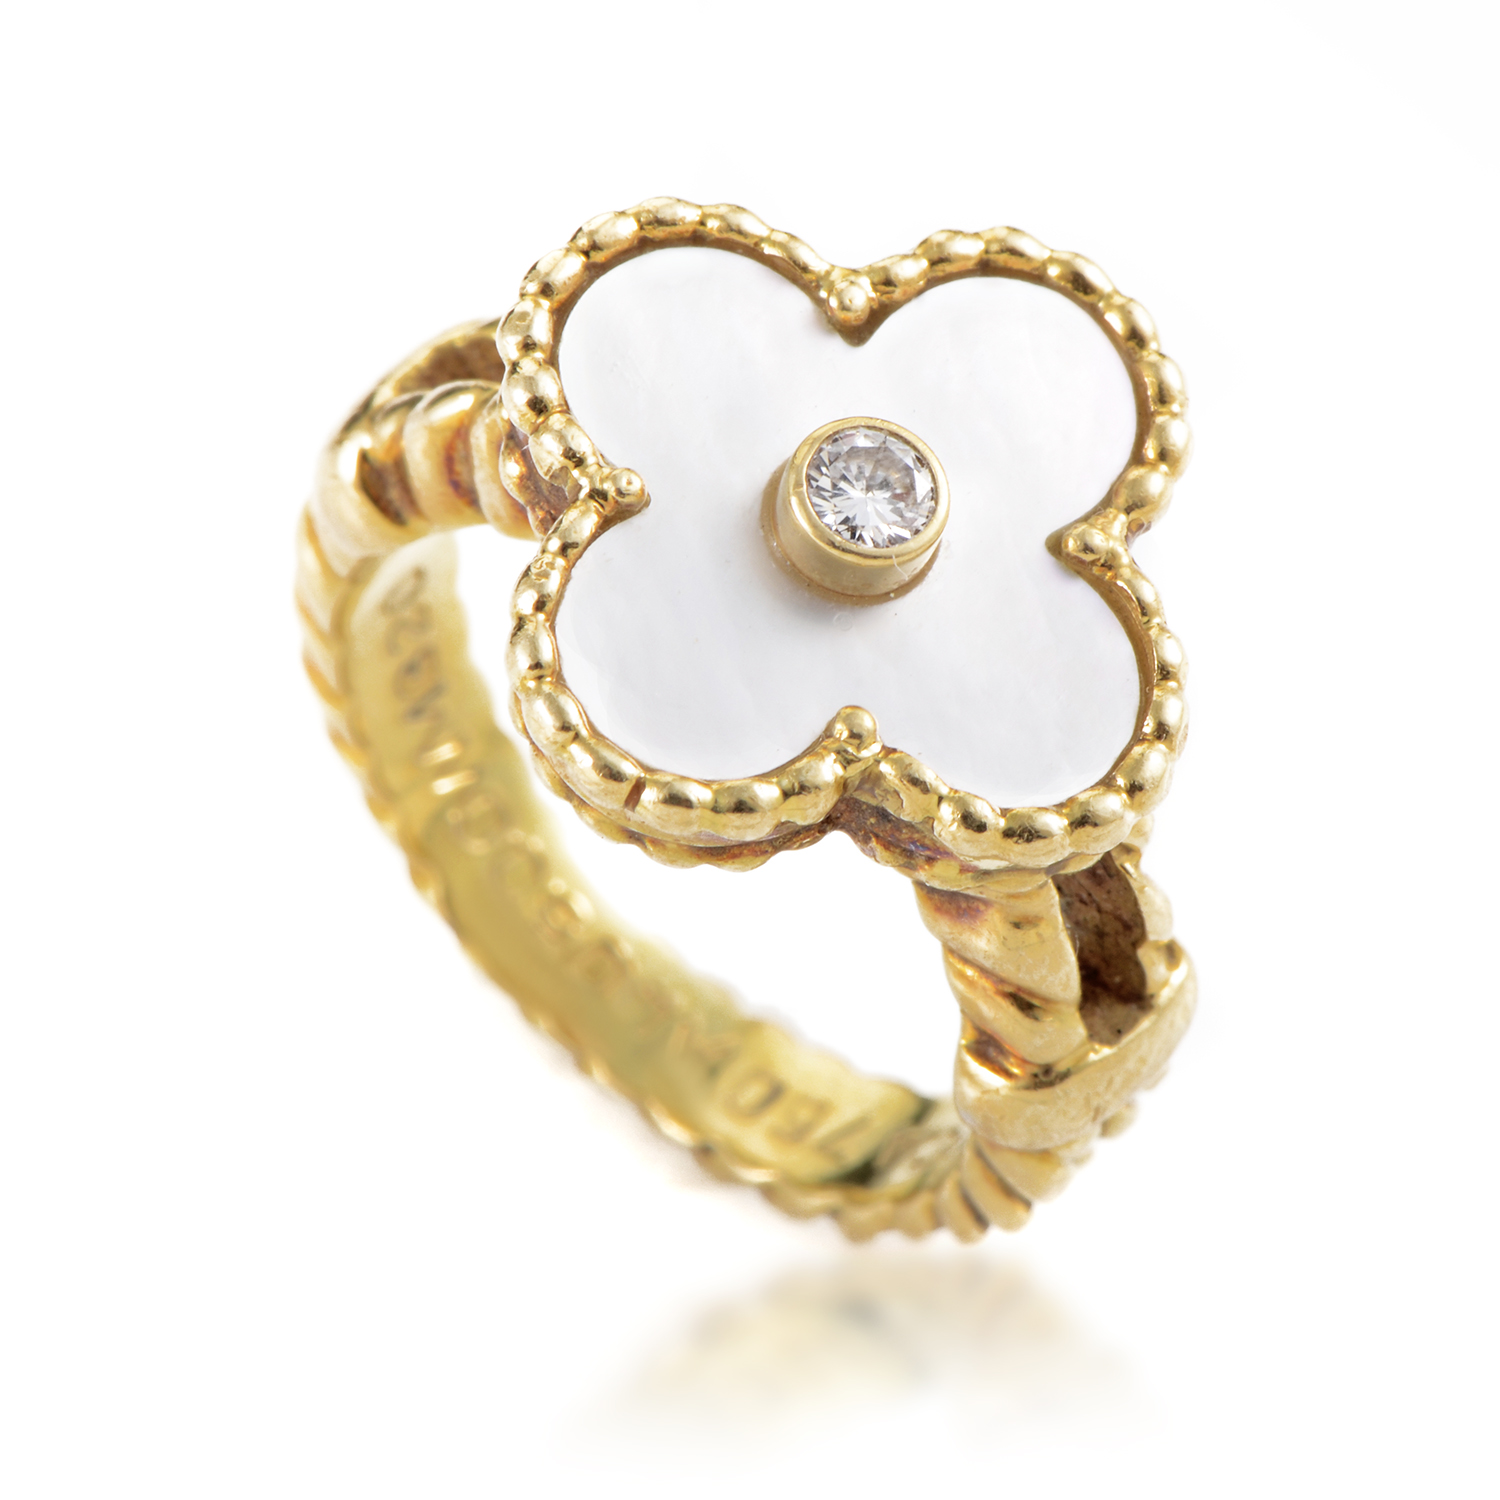 Van Cleef & Arpels Alhambra Yellow Gold Diamond & Mother Of Pearl Flower Ring